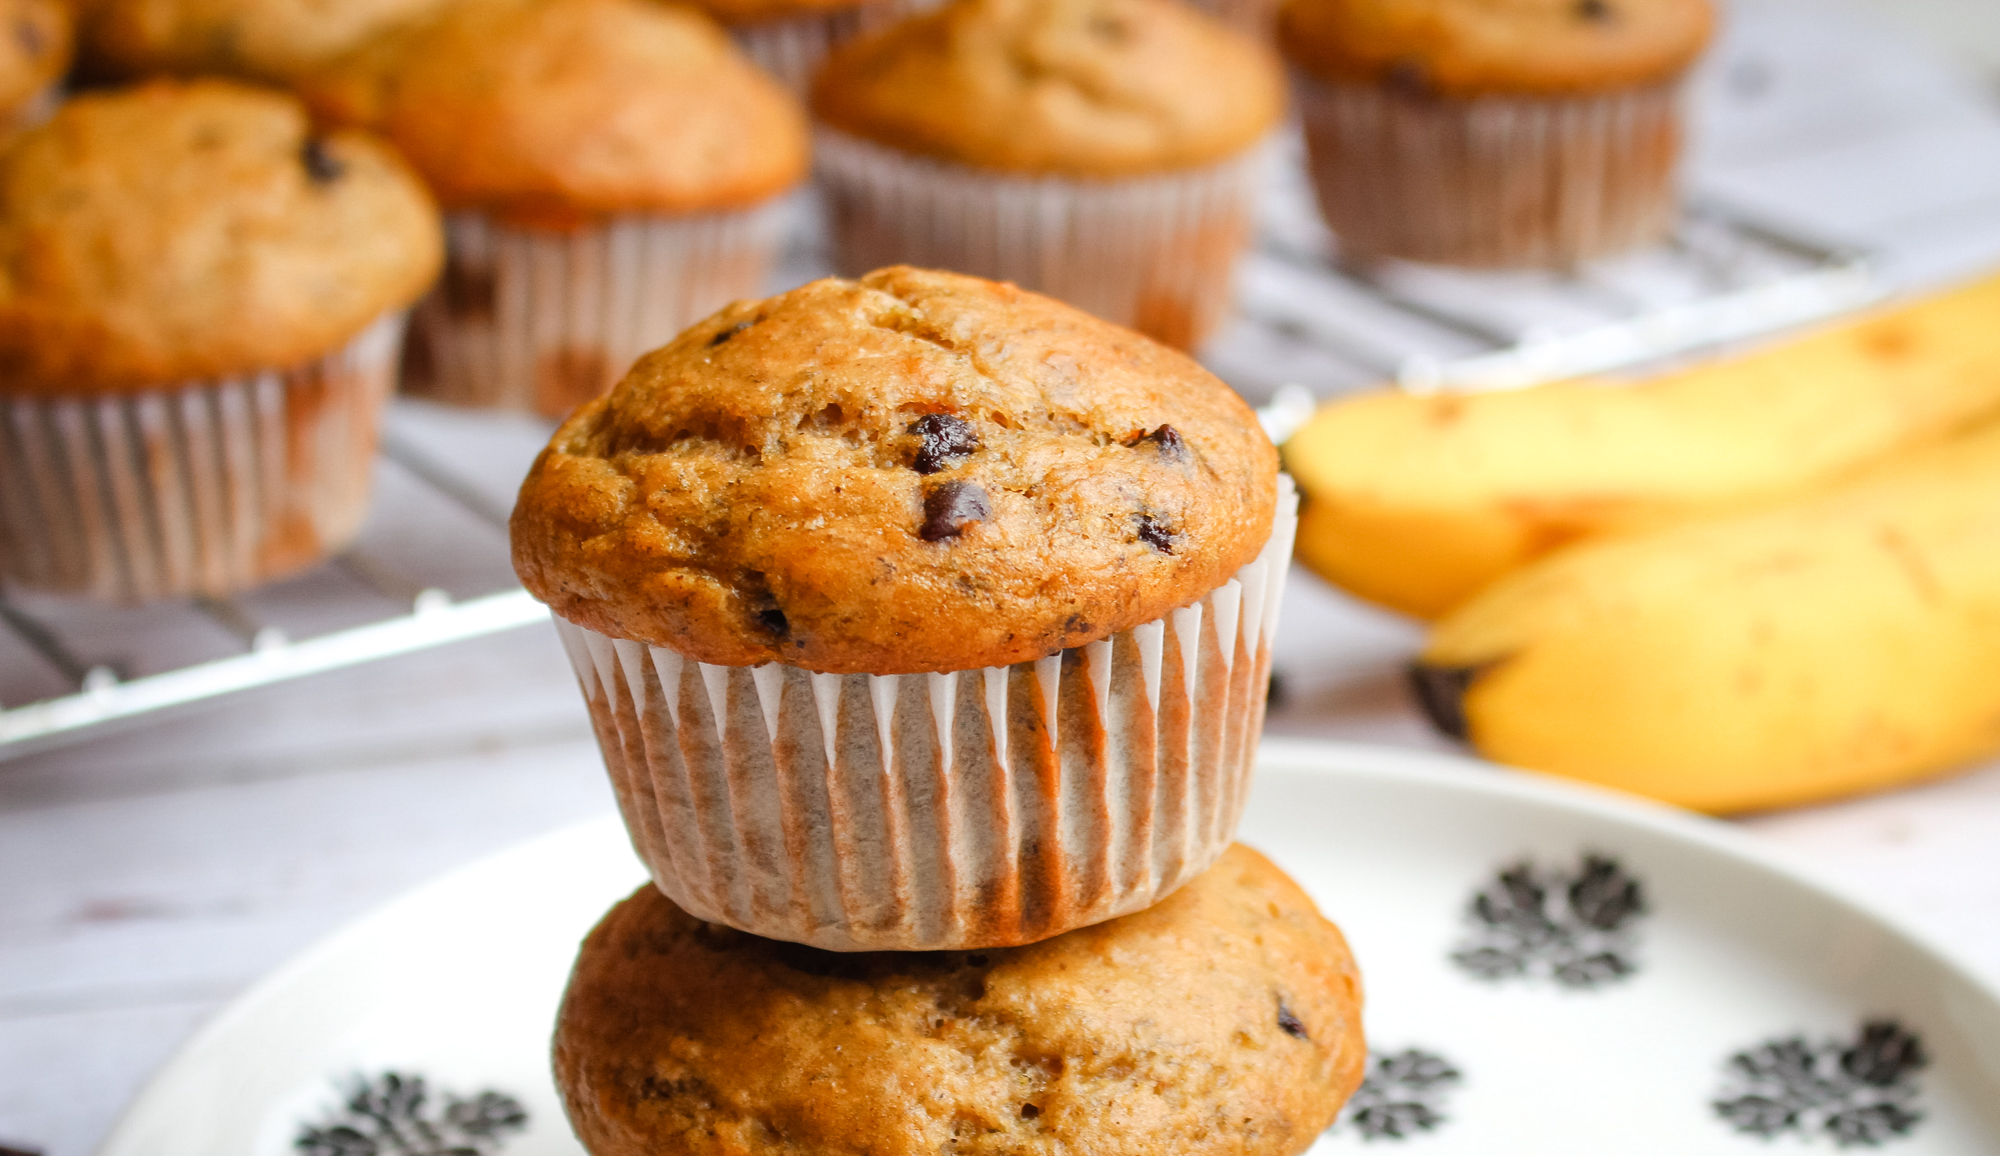 Vegan Fall Desserts: Chocolate Chip Banana Muffins | WorldofVegan.com #vegan #fall #dessert #recipe